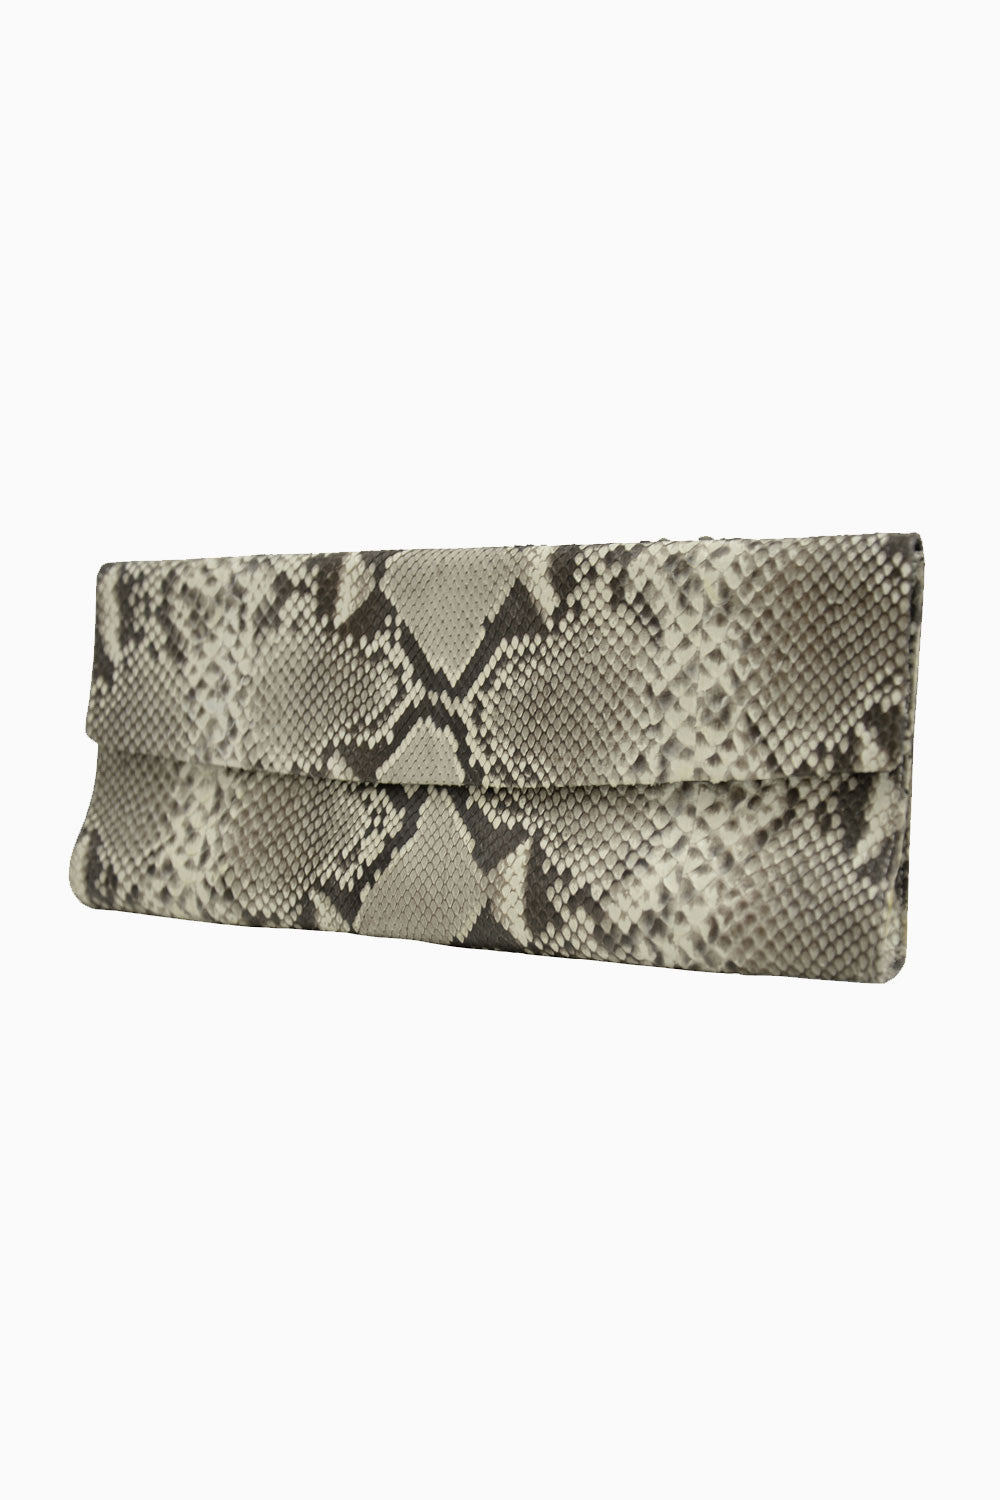 Linear Clutch - Primary New York